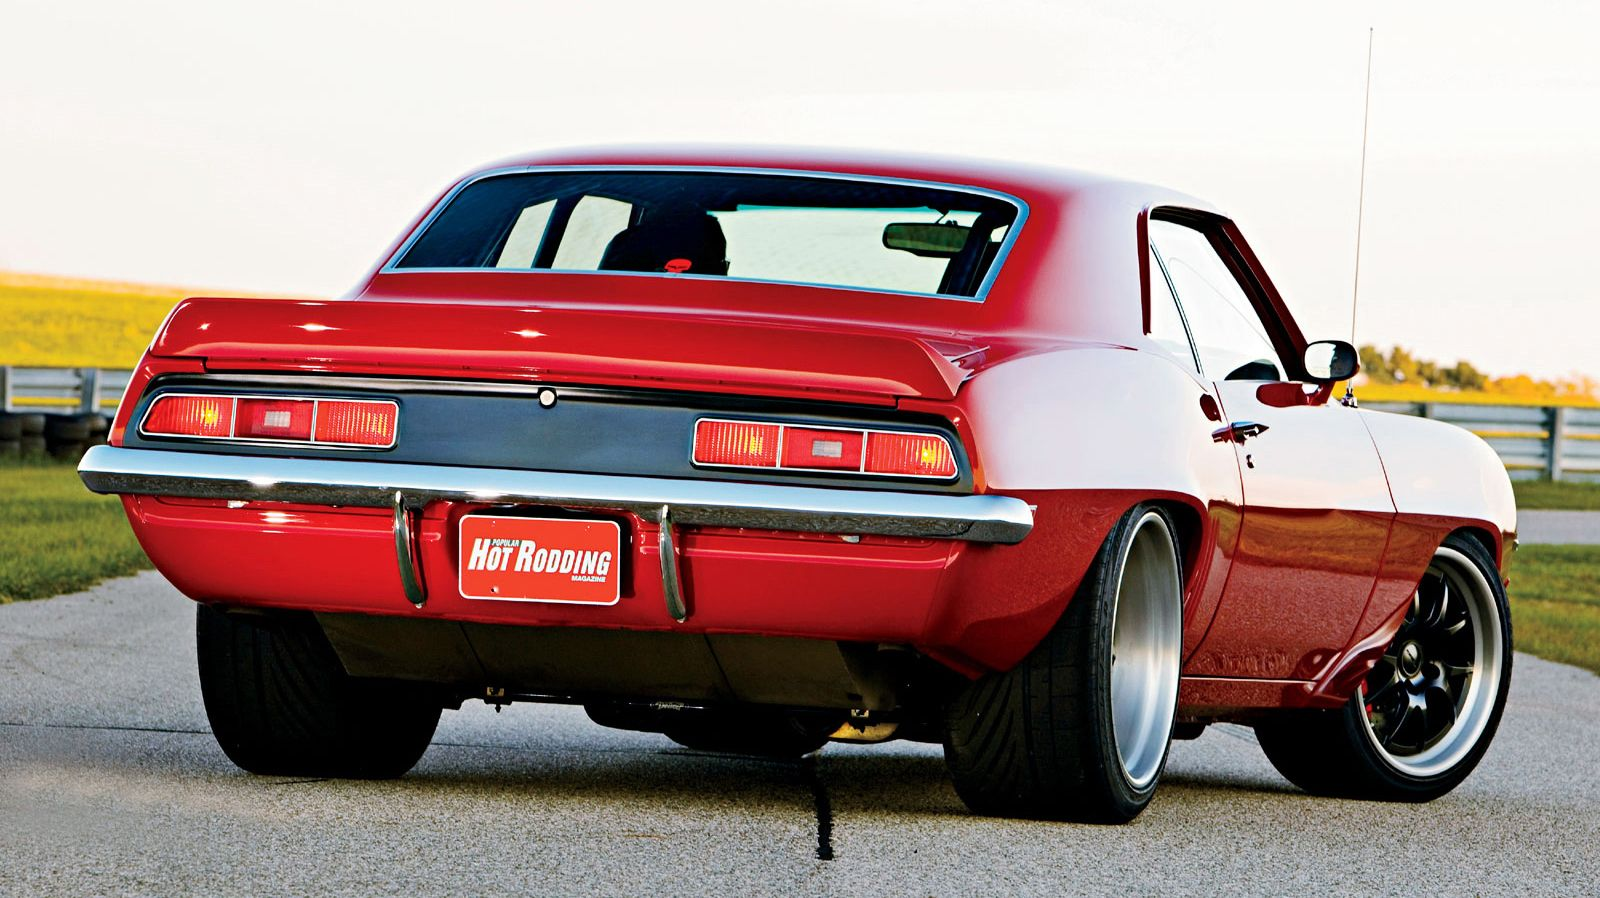 Vehicles Camaro Wallpaper Chevrolet Camaro Camaro Chevrolet